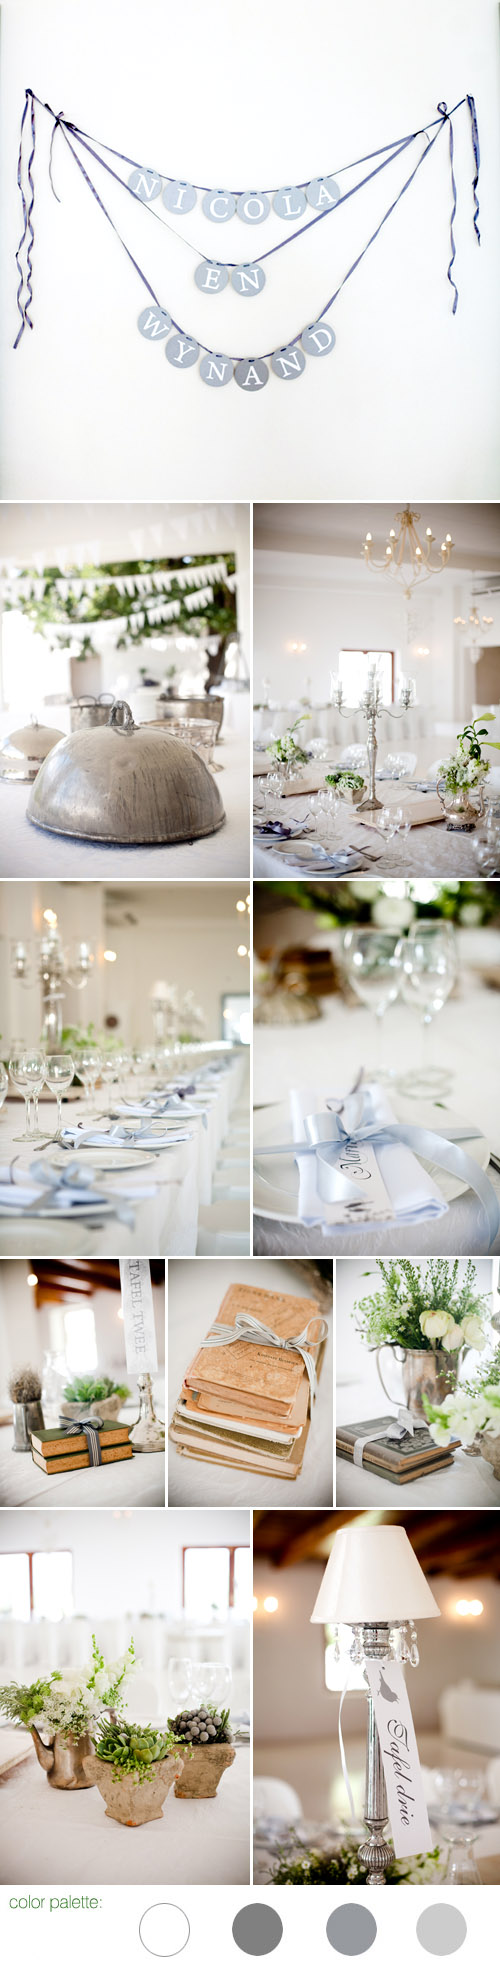 romantic vintage inspired real wedding in south africa, white, gray and silver wedding color palette and table decor, images by Christine Meintjes